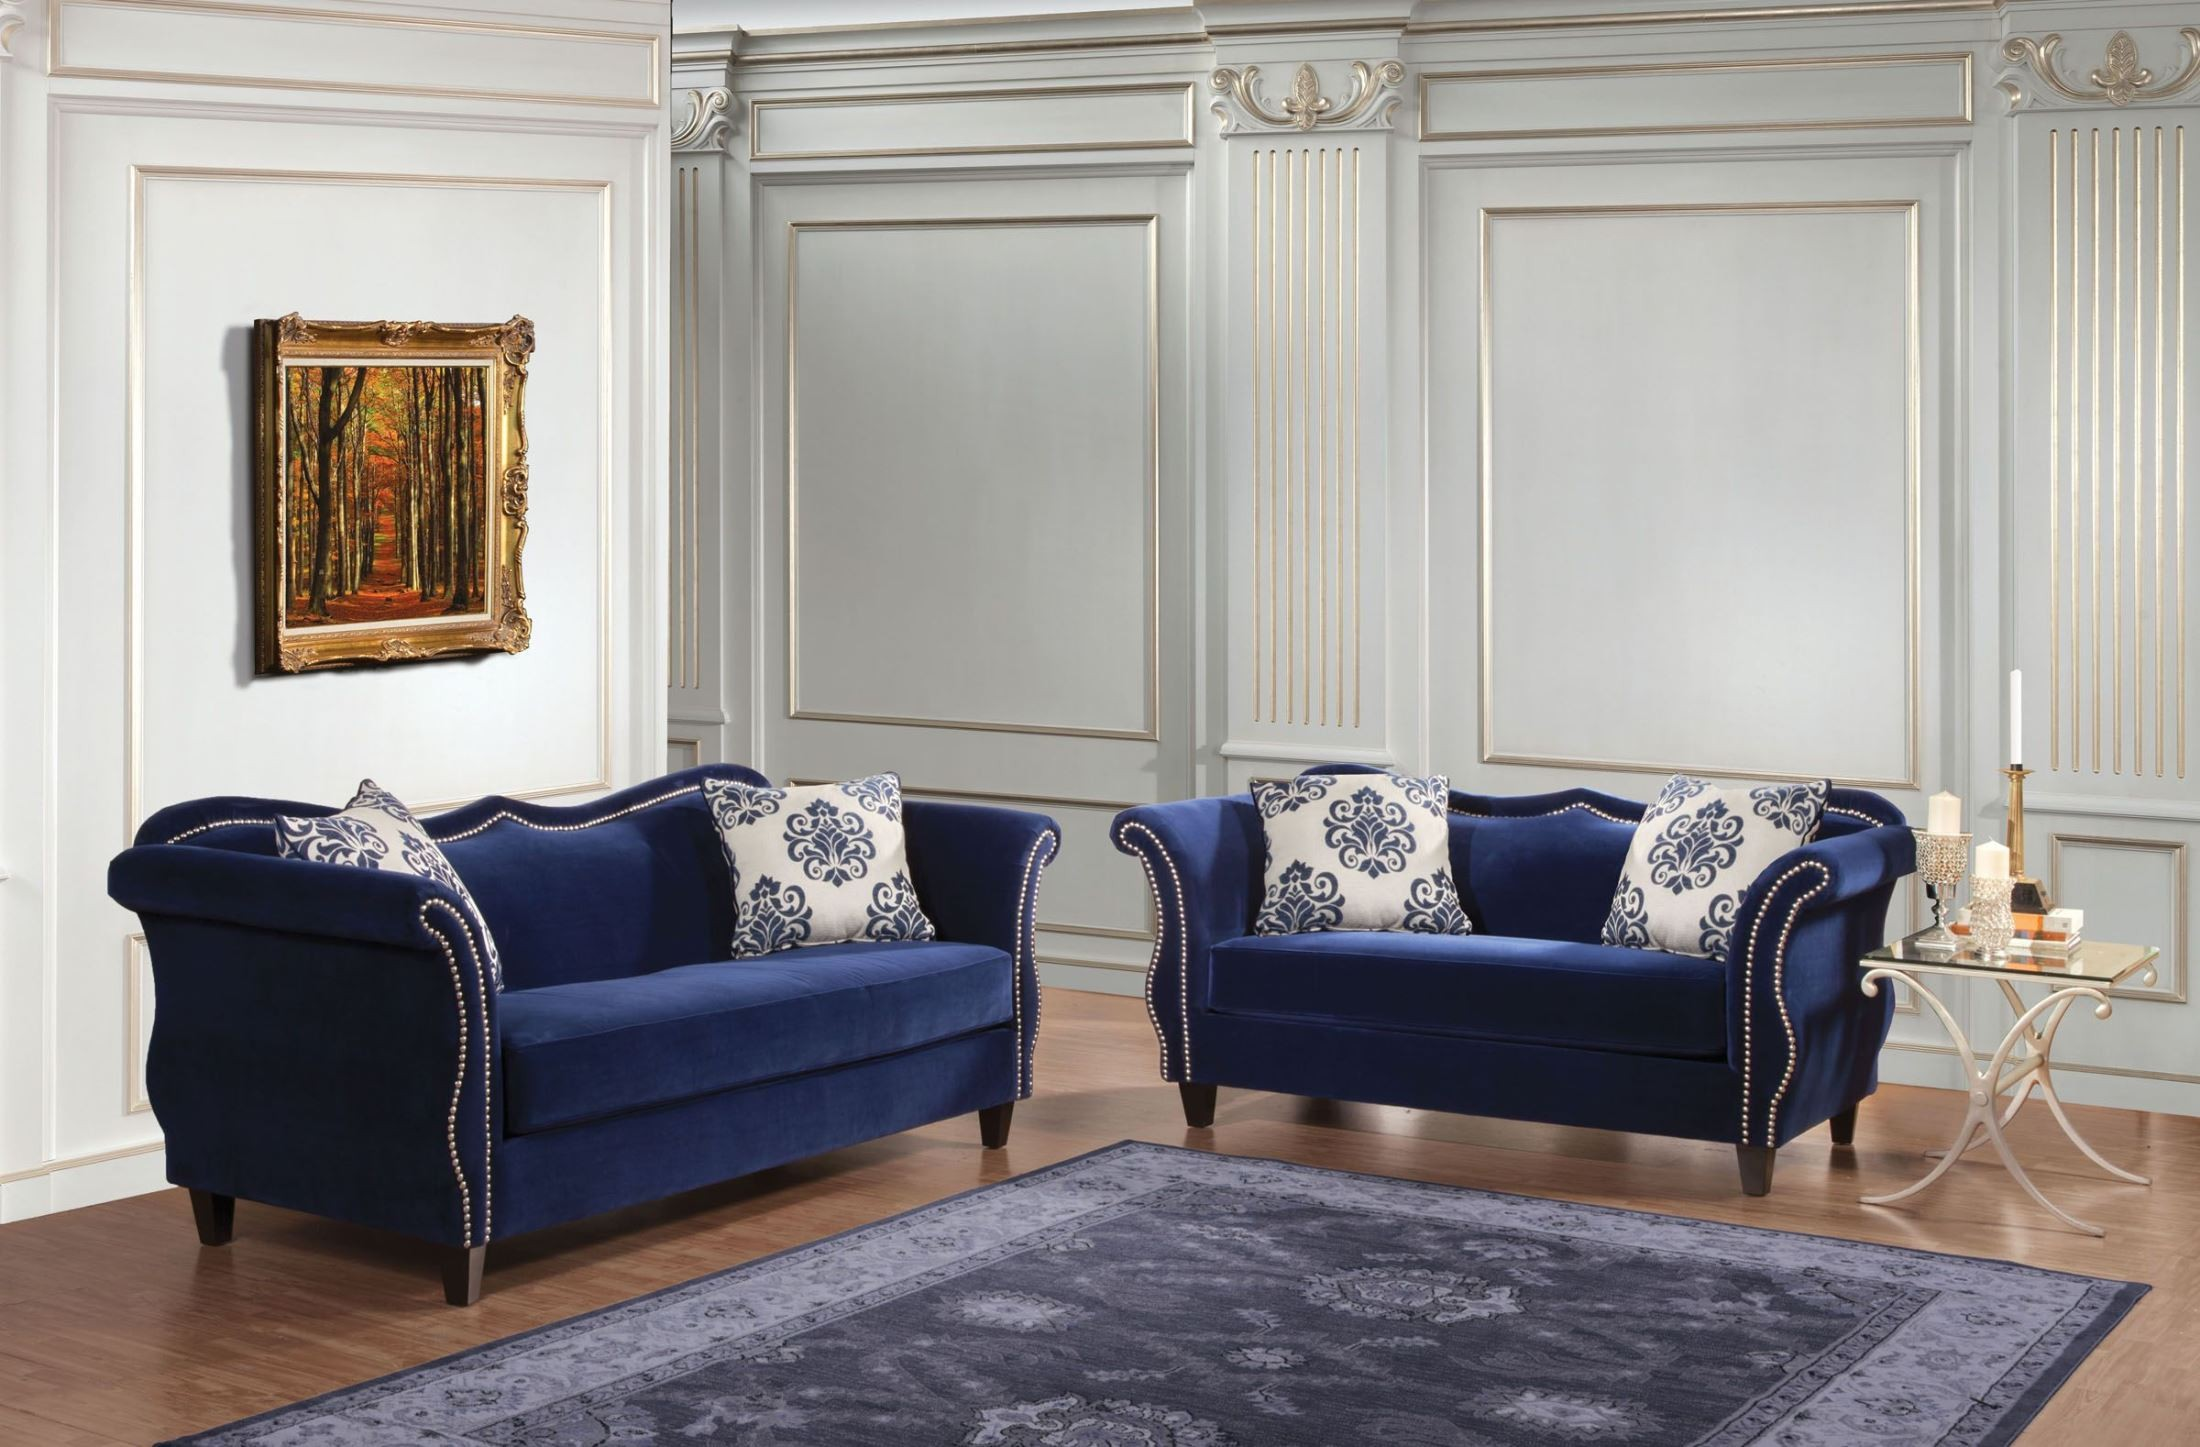 Zaffiro royal blue living room set sm2231 sf furniture for The living room furniture